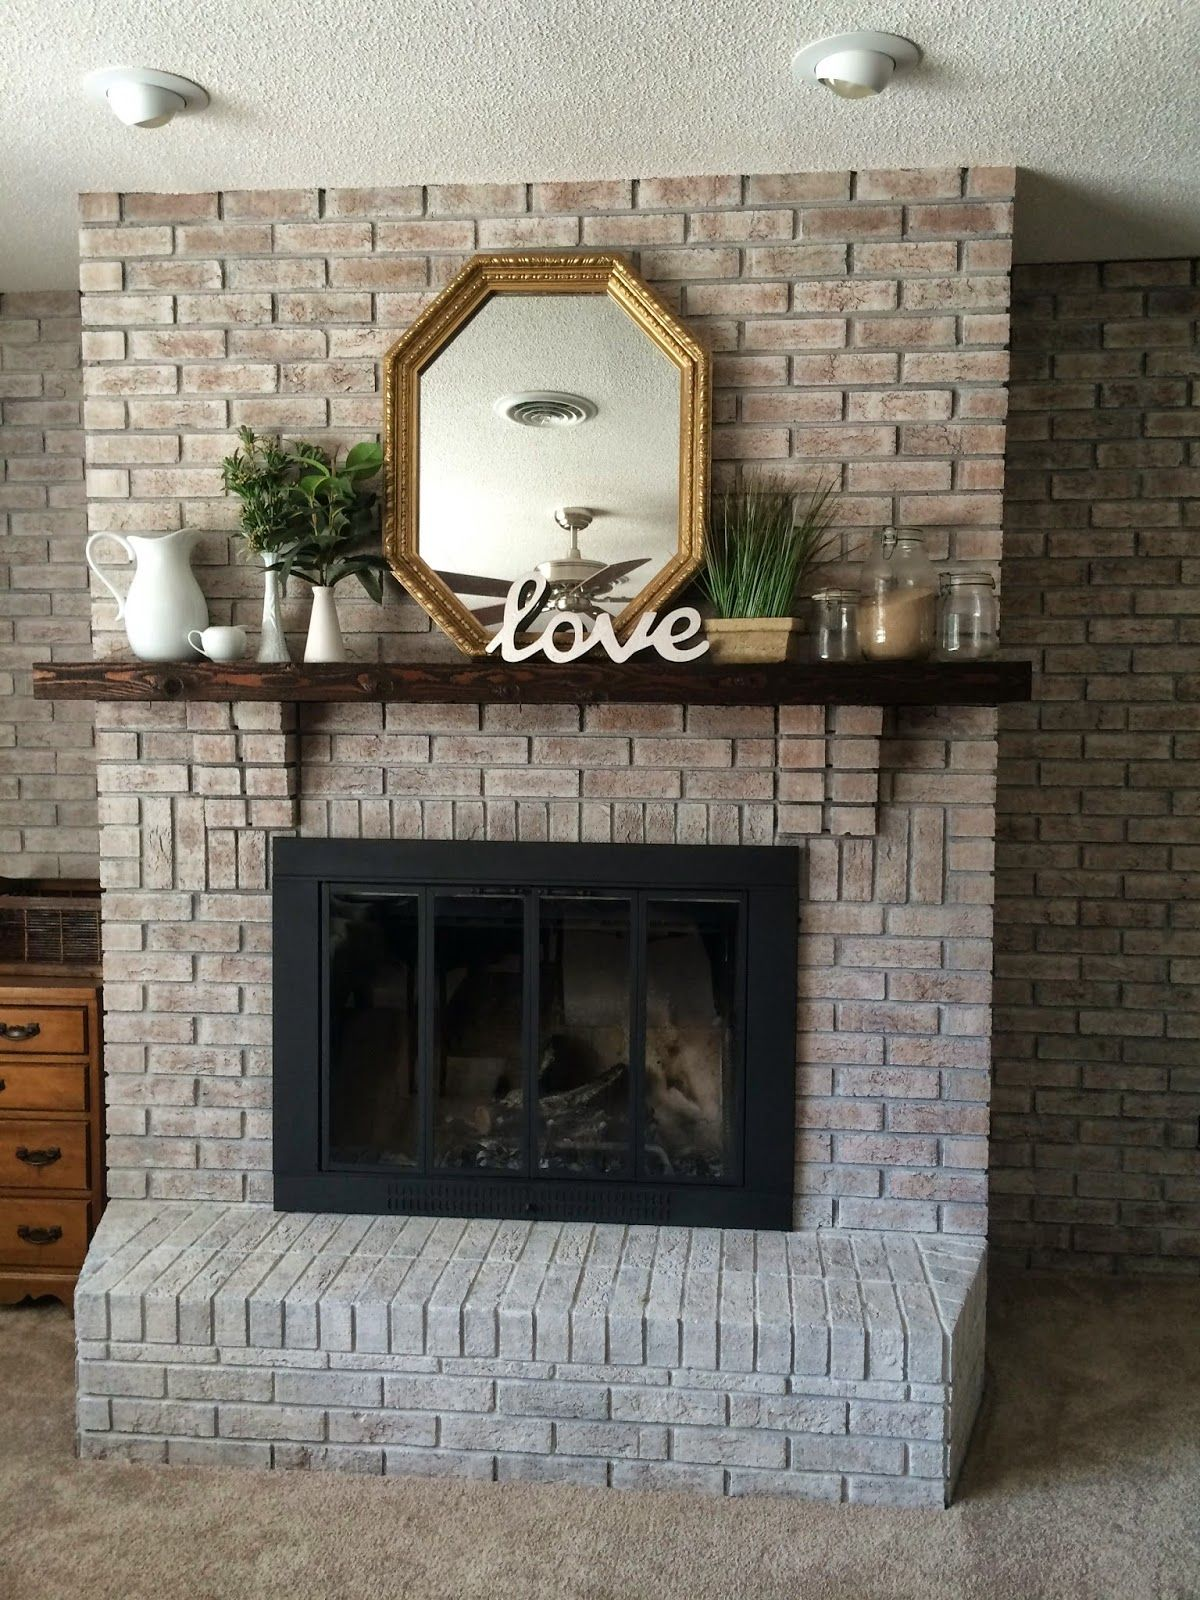 What Paint to Use On Brick Fireplace New White Washing Brick with Gray Beige Walking with Dancers